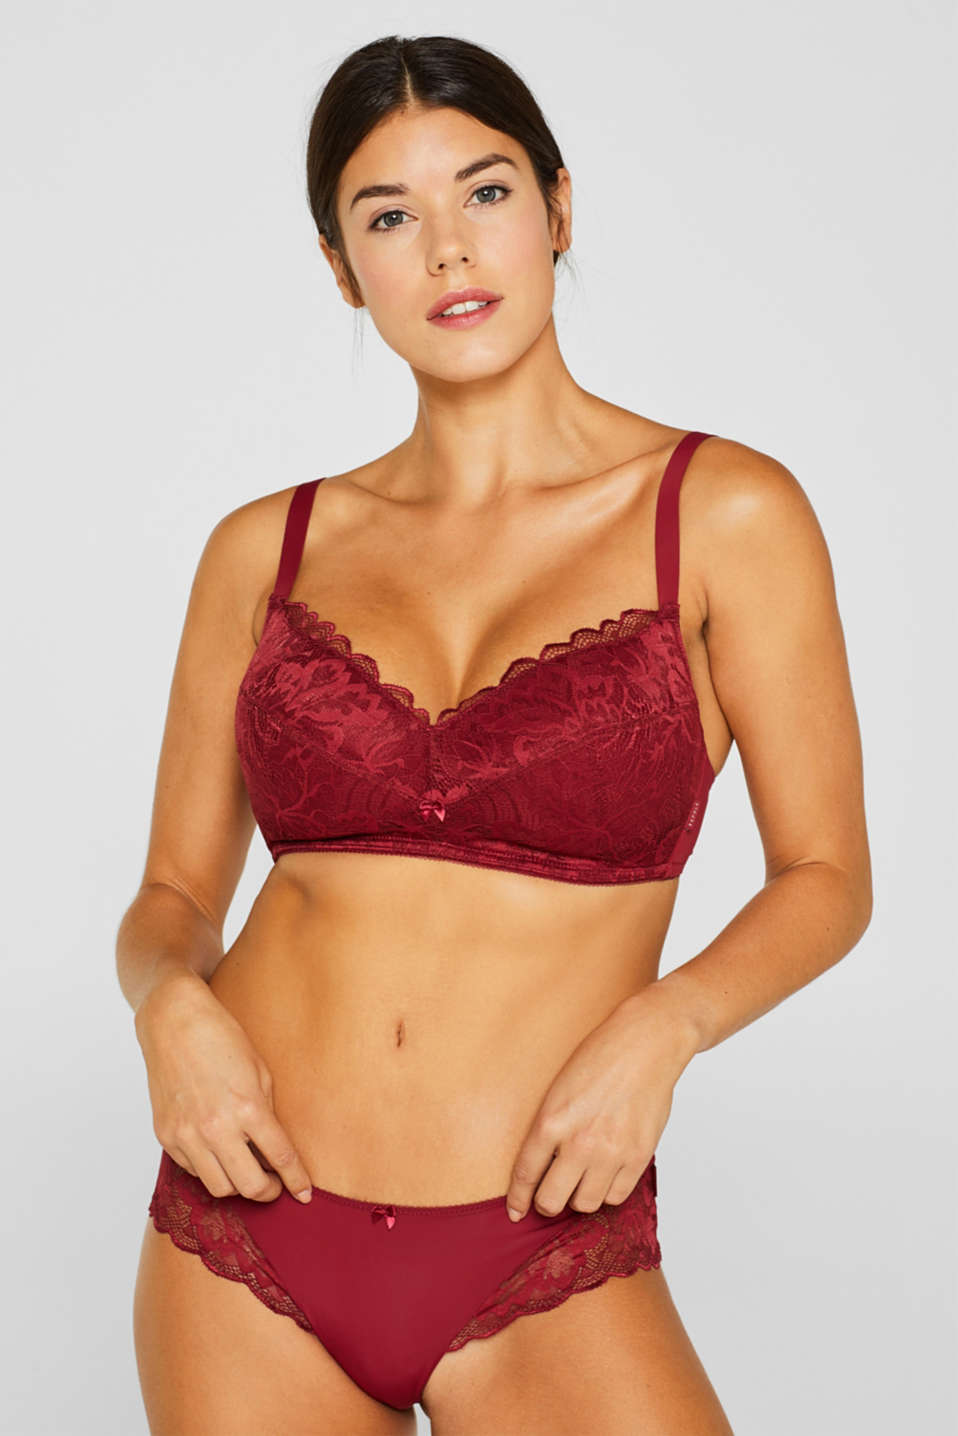 Esprit - Padded, non-wired lace bra for large cup sizes